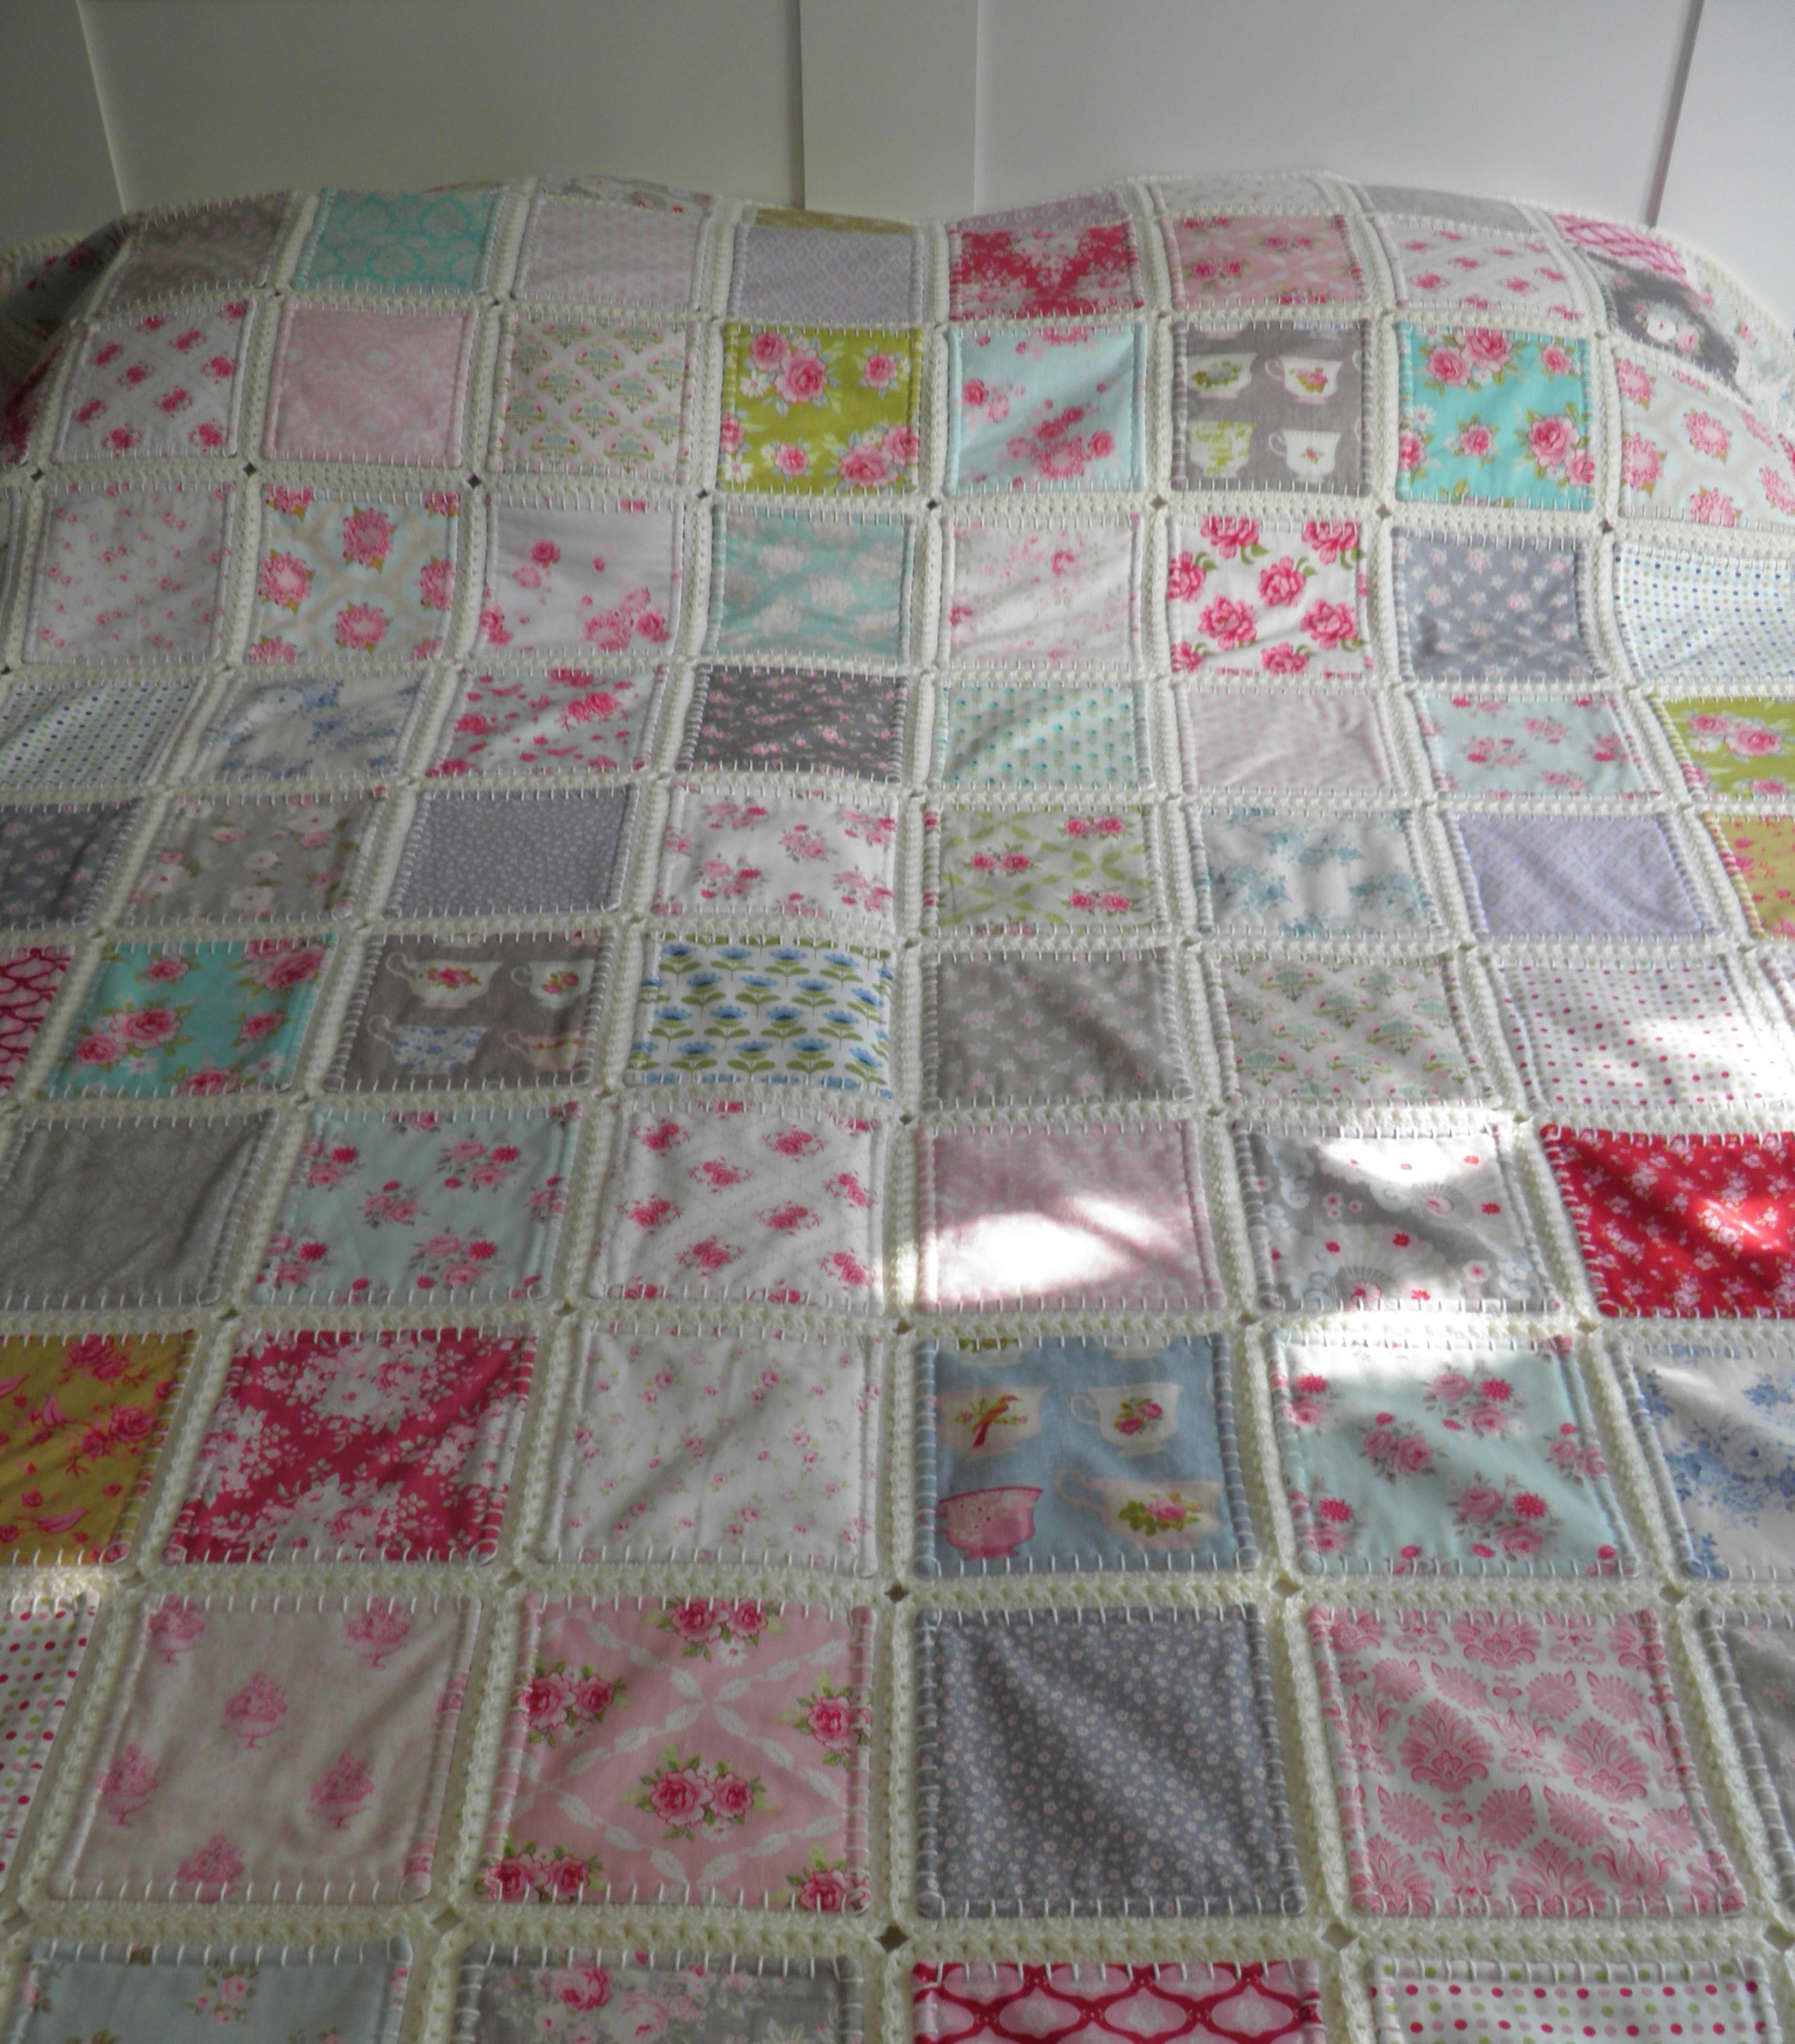 A Quilt But Slightly Different She Measures App 92 Inches In Square